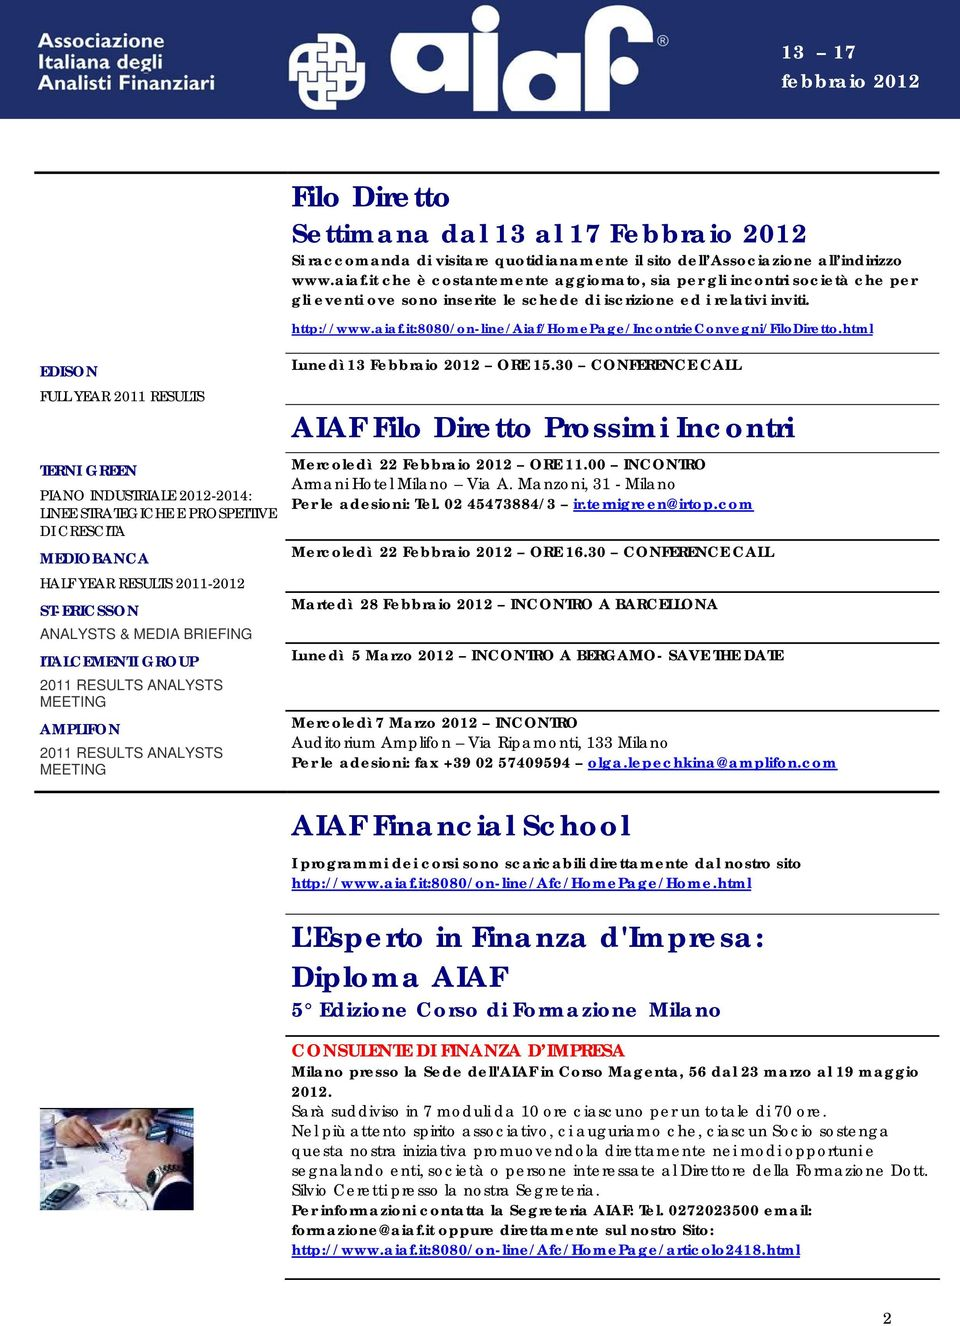 it:8080/on-line/aiaf/homepage/incontrieconvegni/filodiretto.